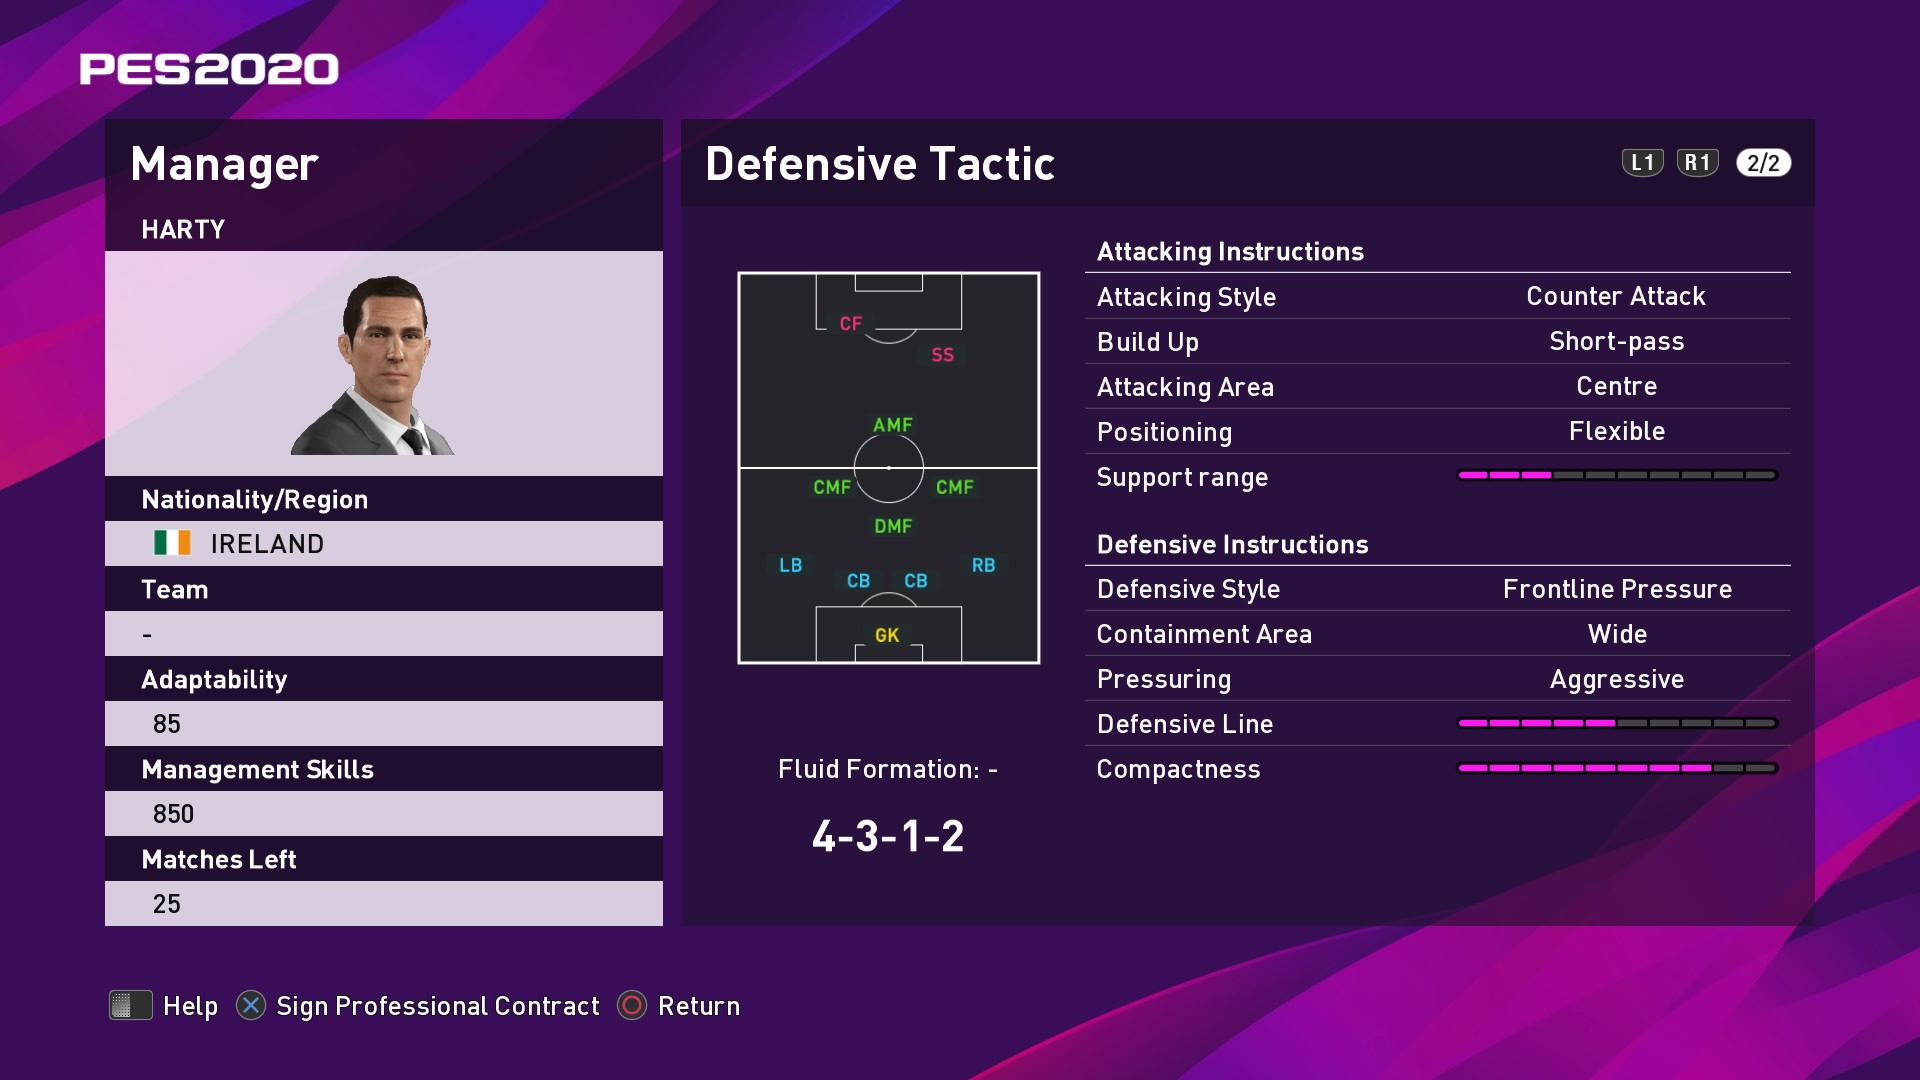 Harty Defensive Tactic in PES 2020 myClub